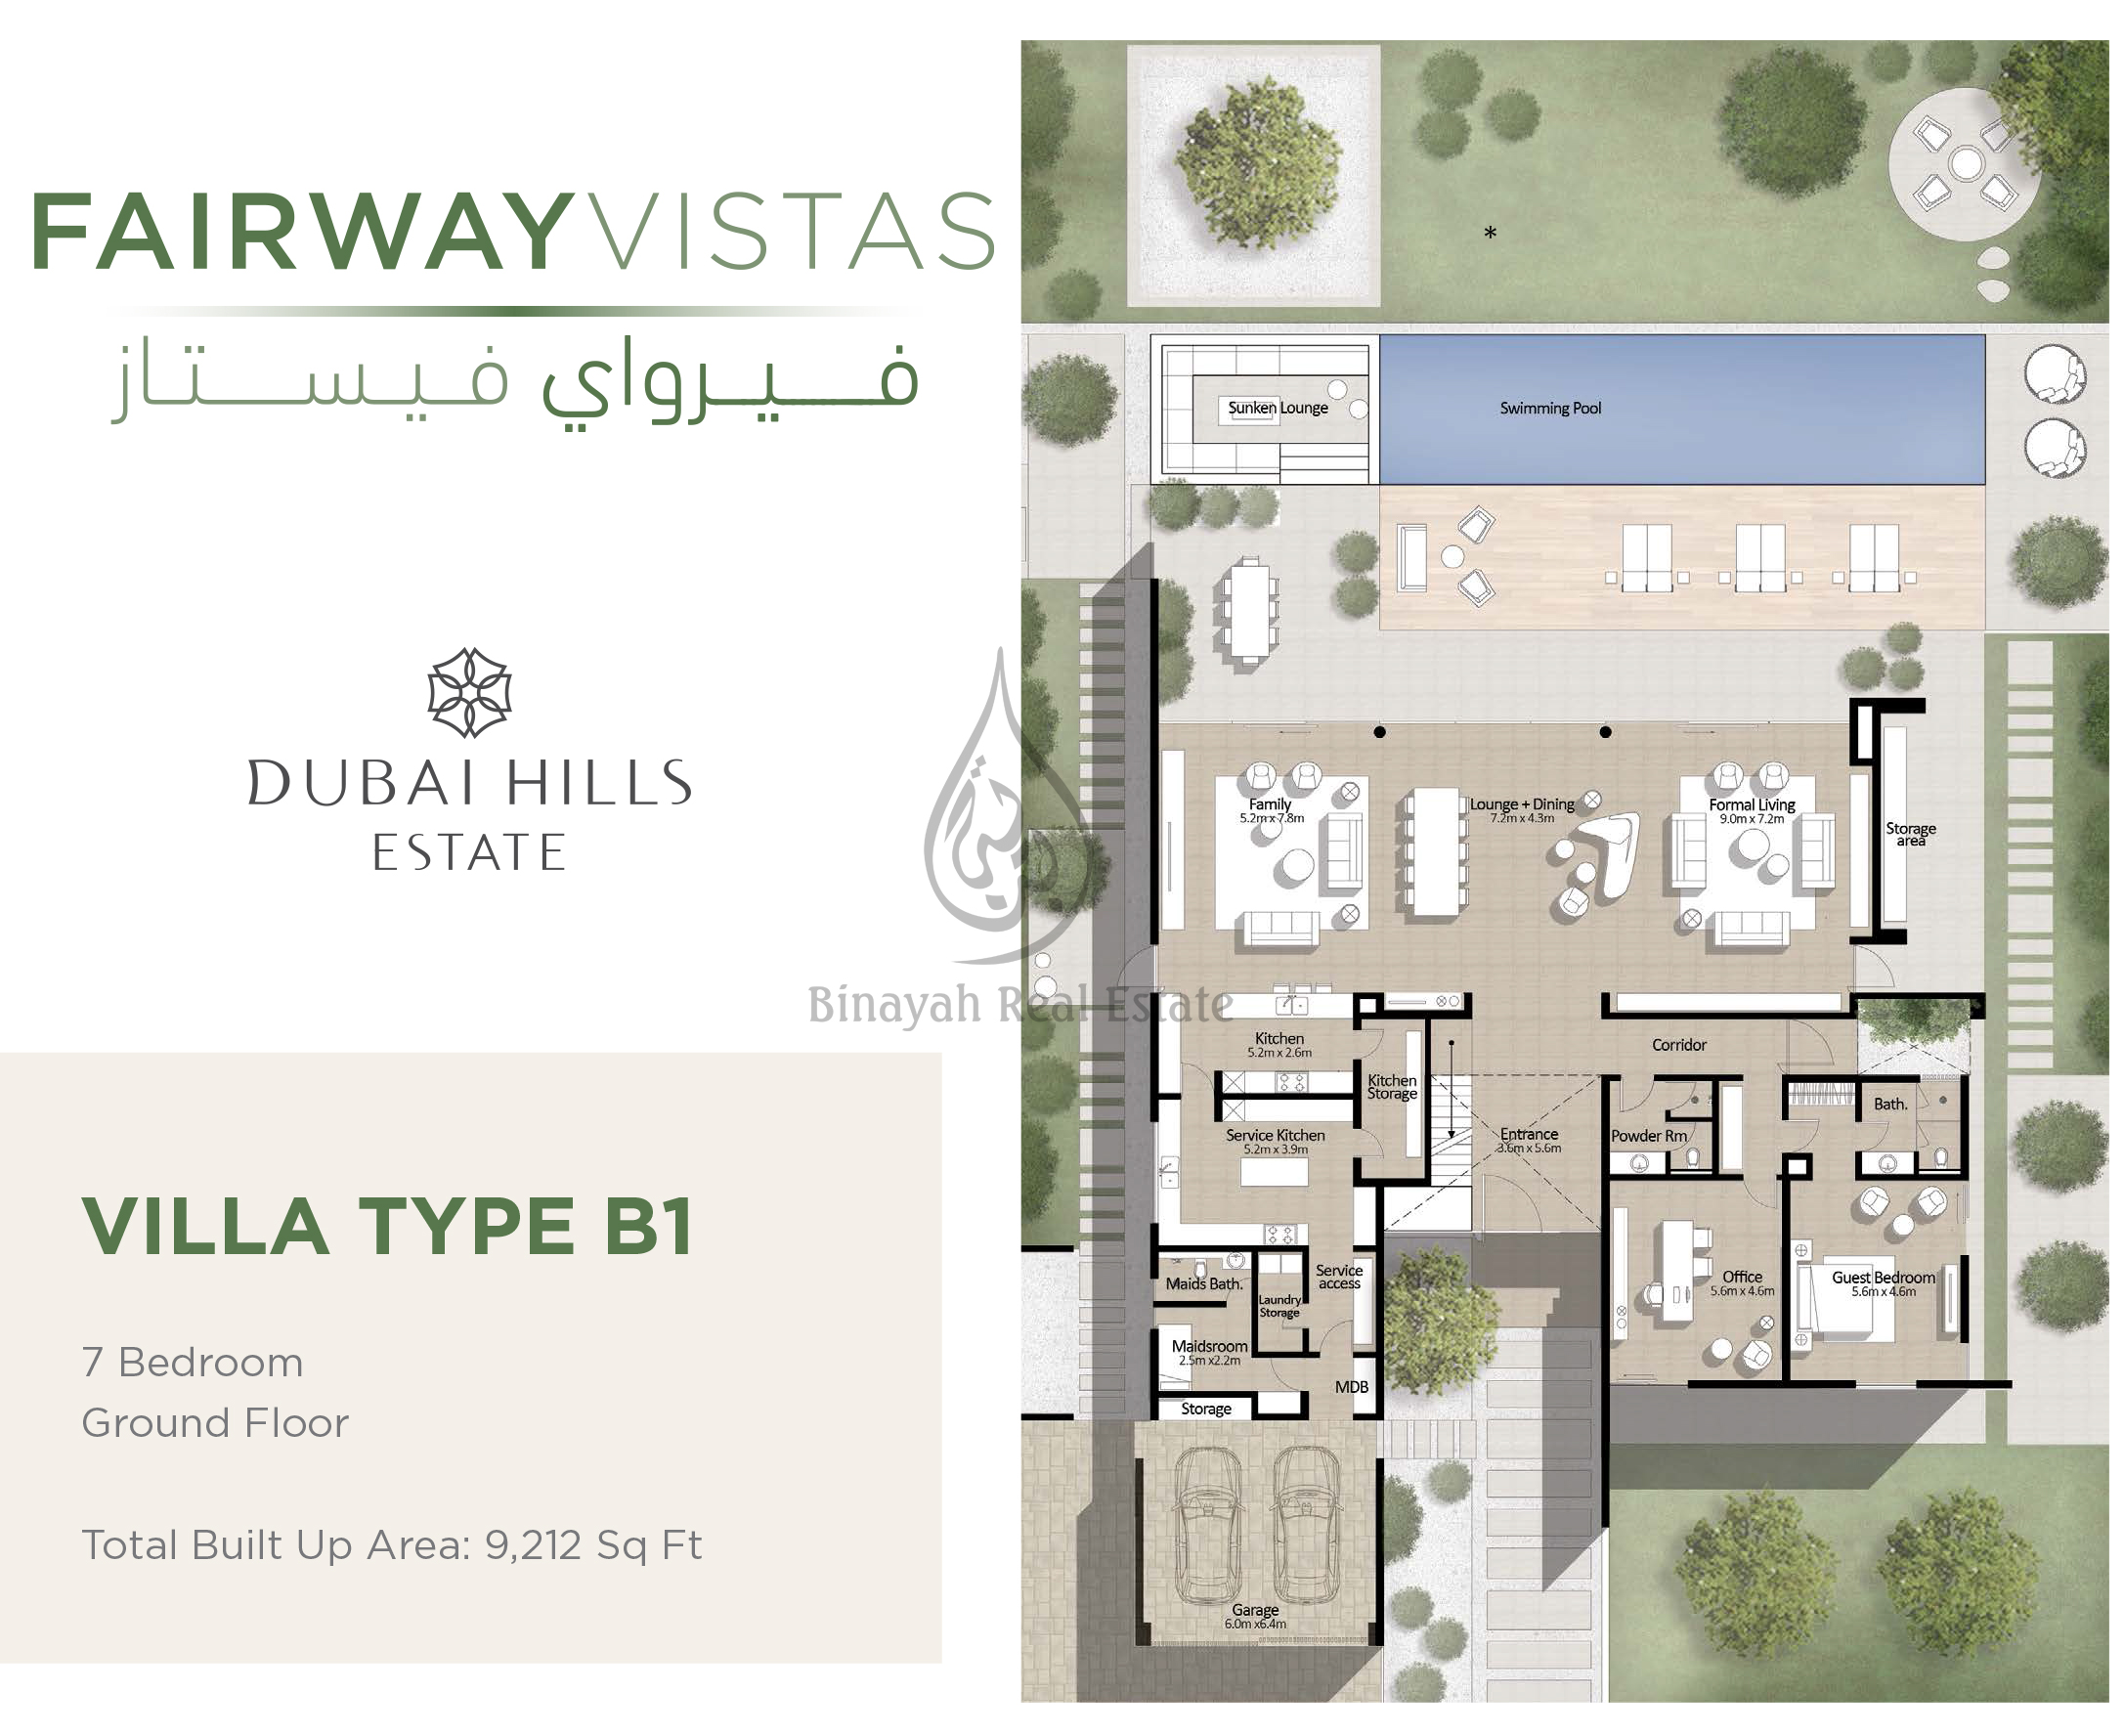 residential land for sale in dubai hills estate. Black Bedroom Furniture Sets. Home Design Ideas